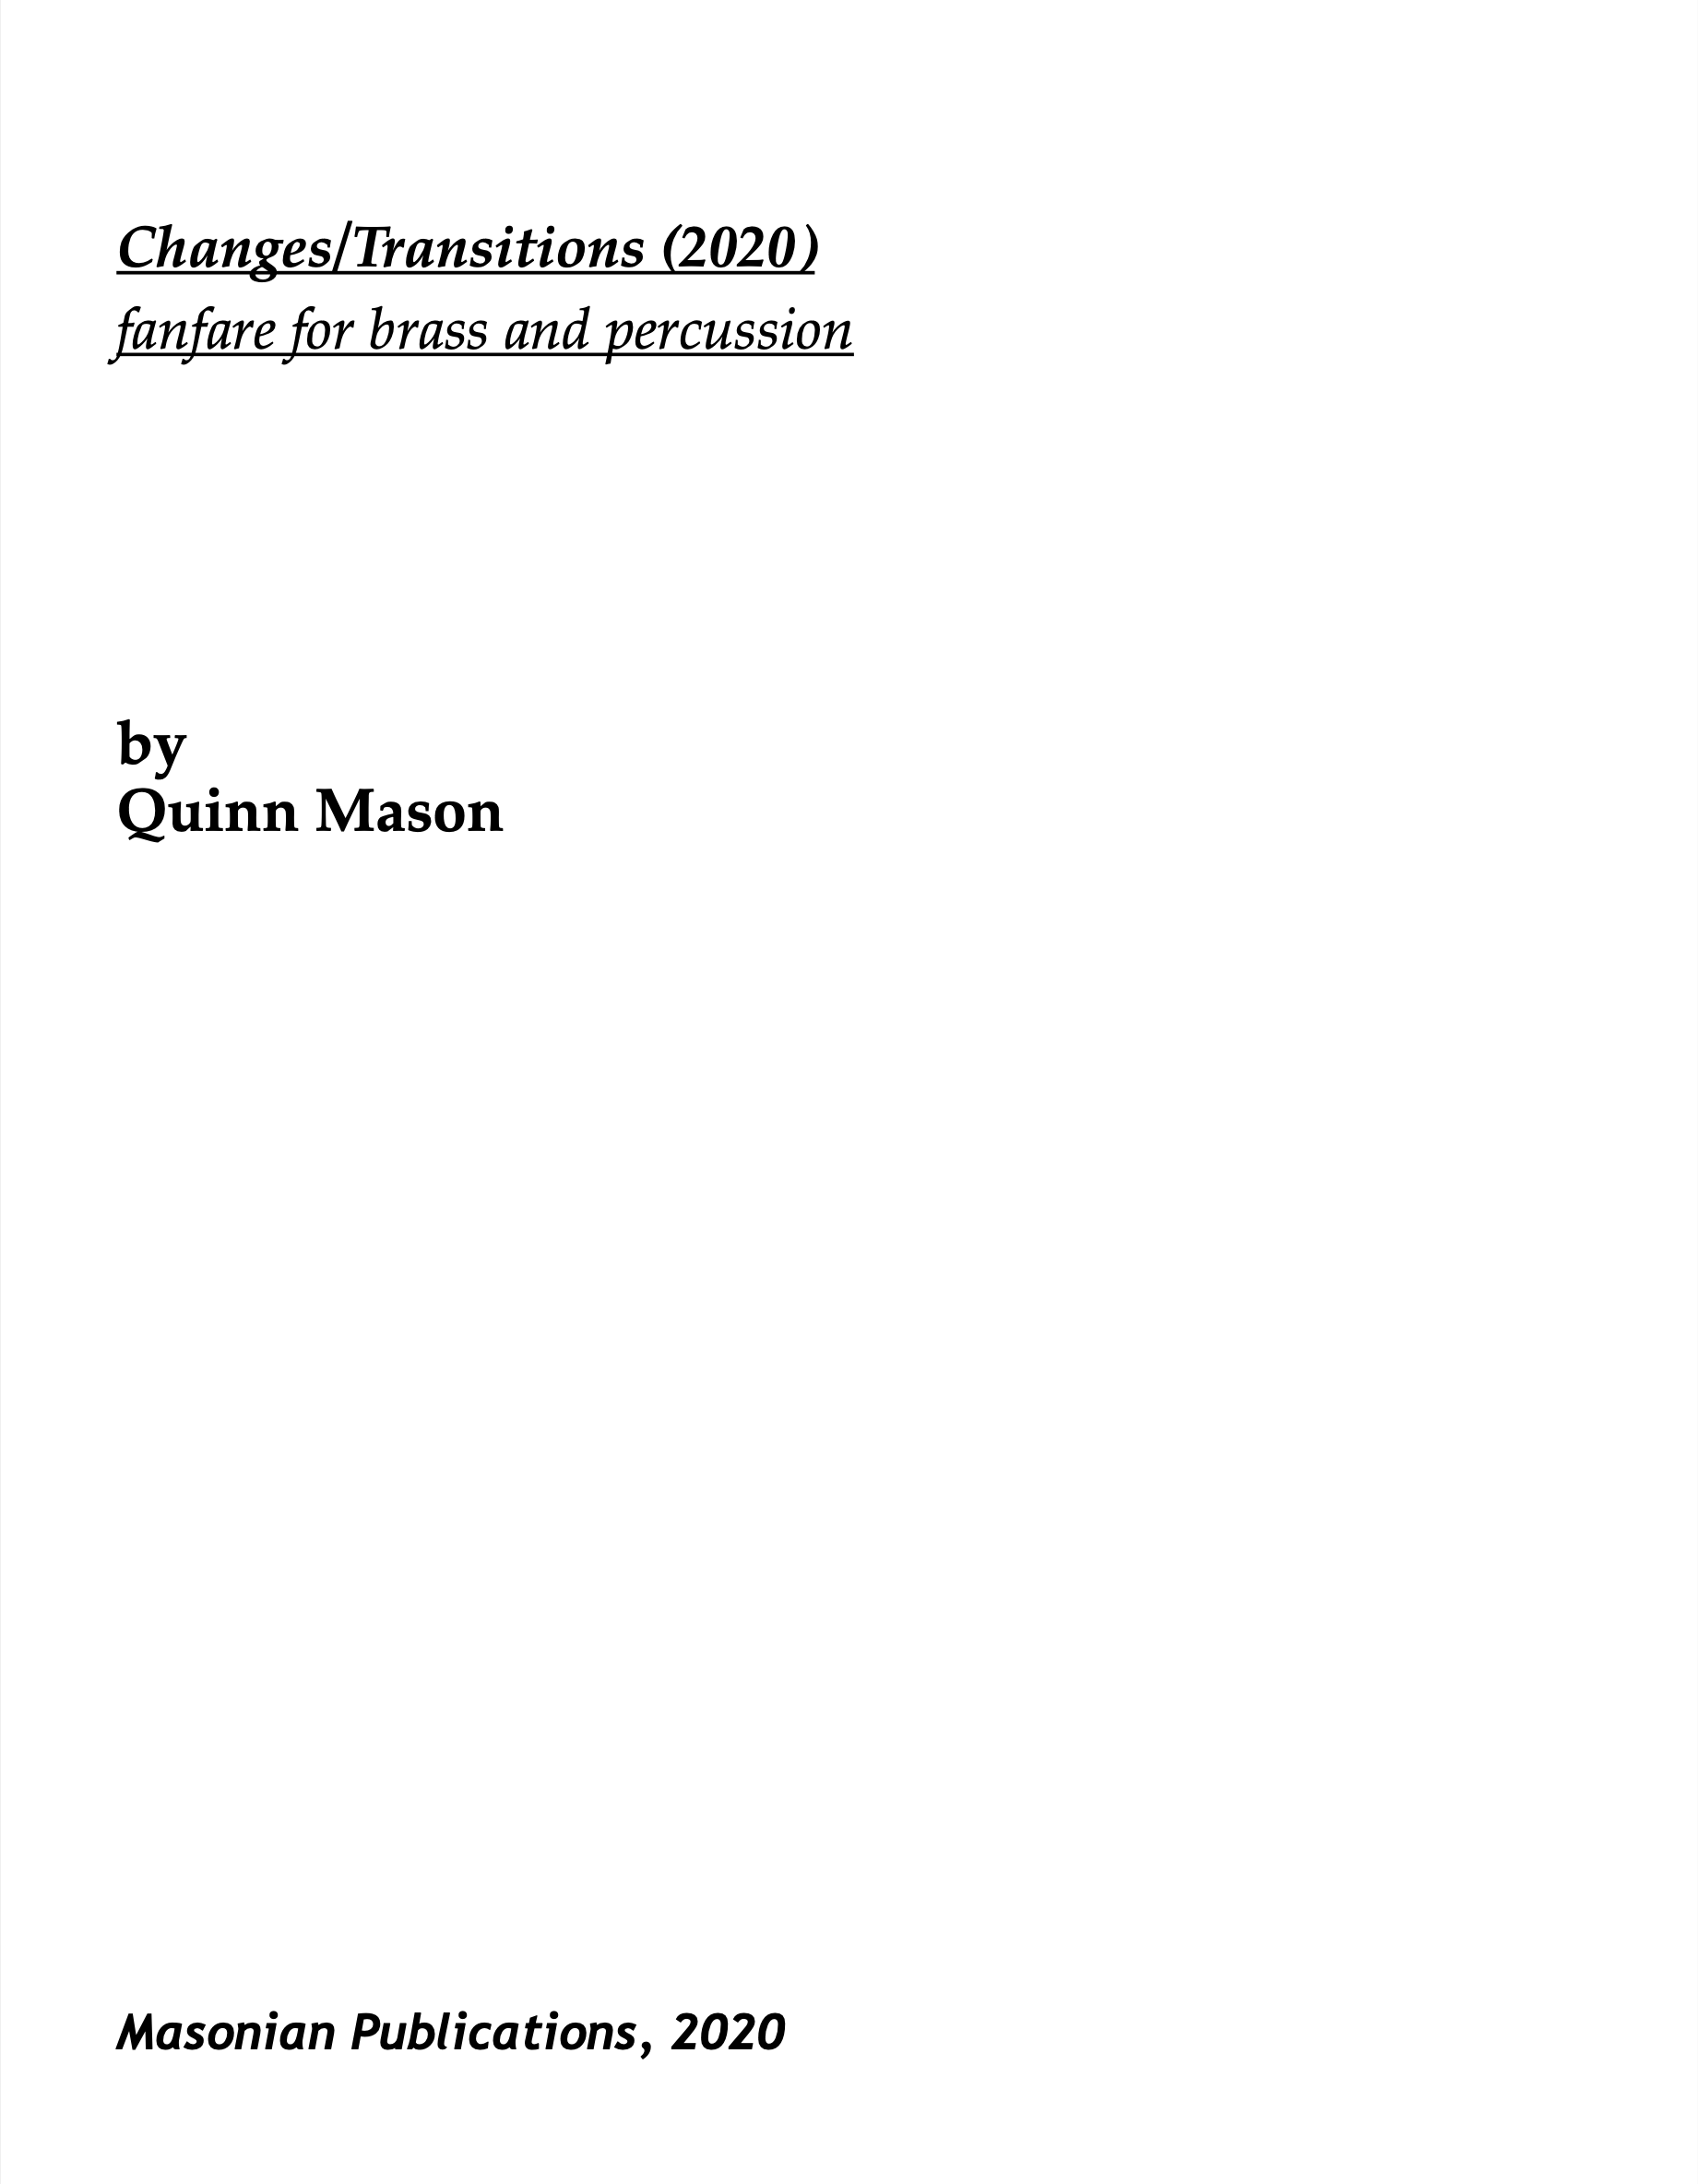 Changes/Transitions by Quinn Mason